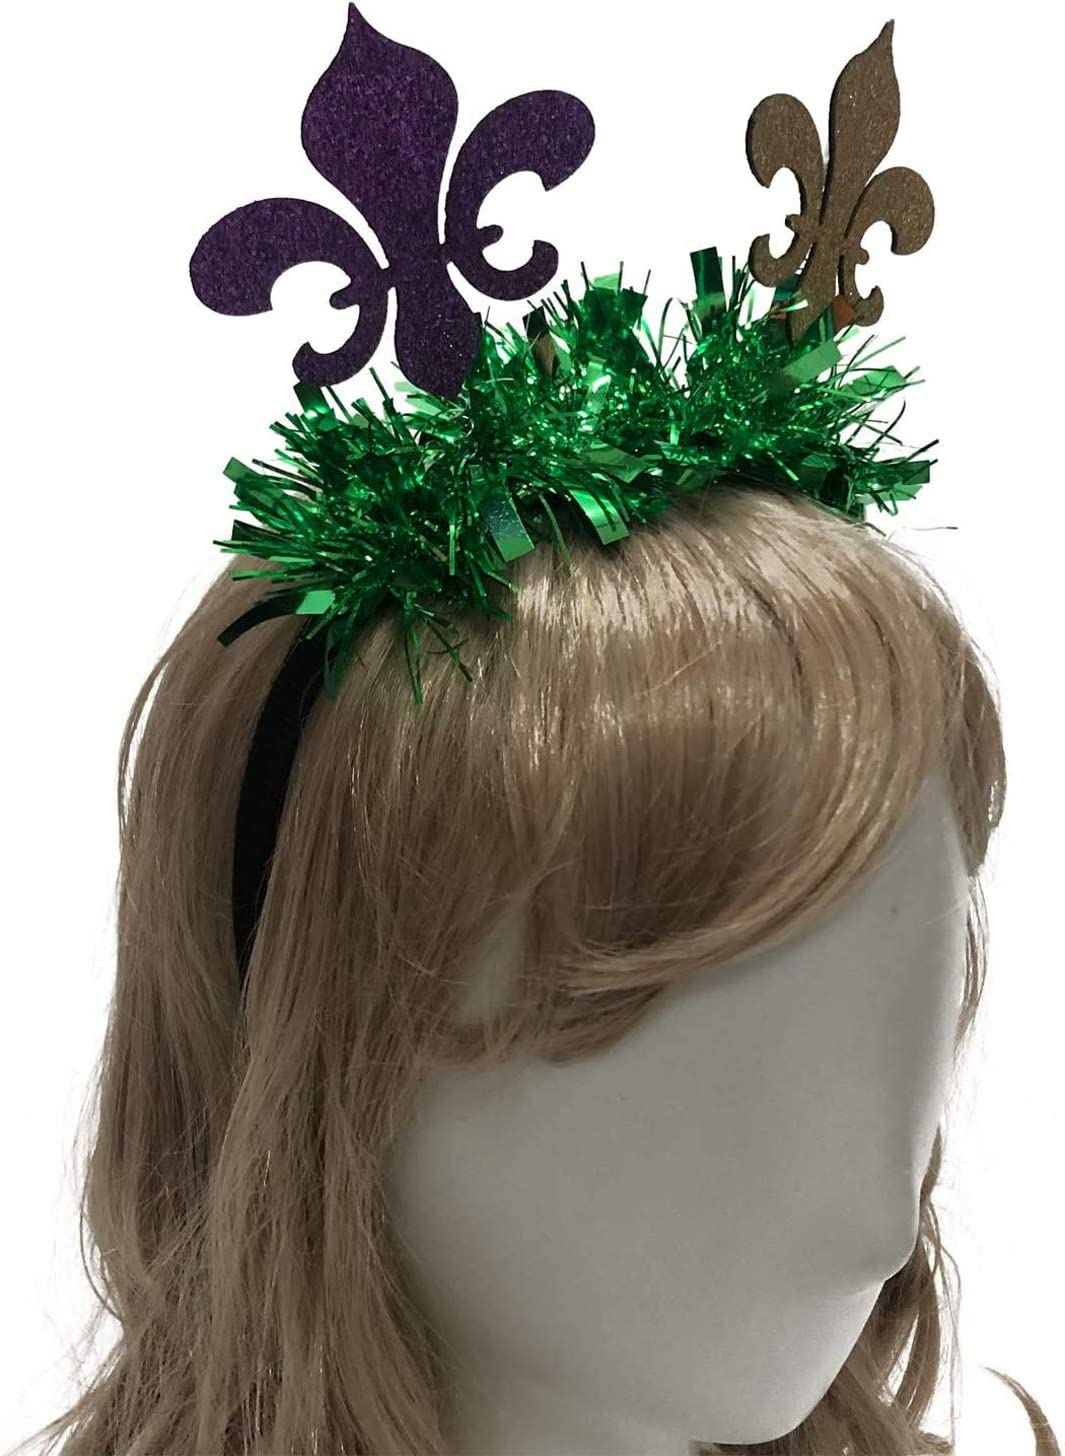 2 Pack Mardi Gras Headbands Set Party Favors,Sequin Stretchy Glitter Headbands for Carnival Party Costume